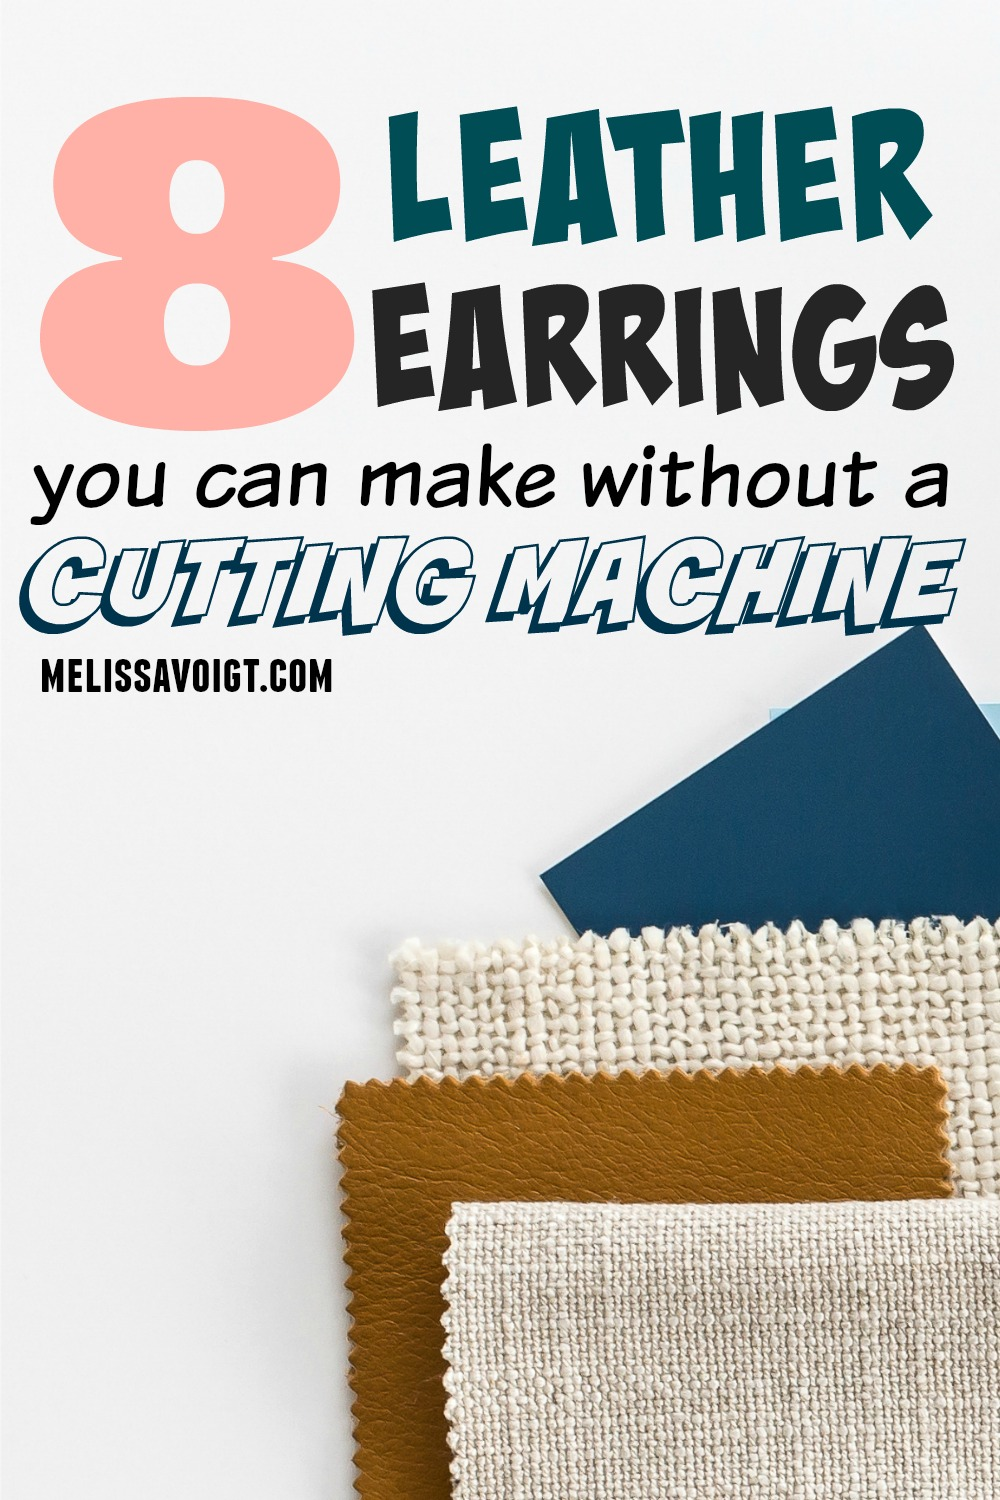 leather earrings without machine.jpg